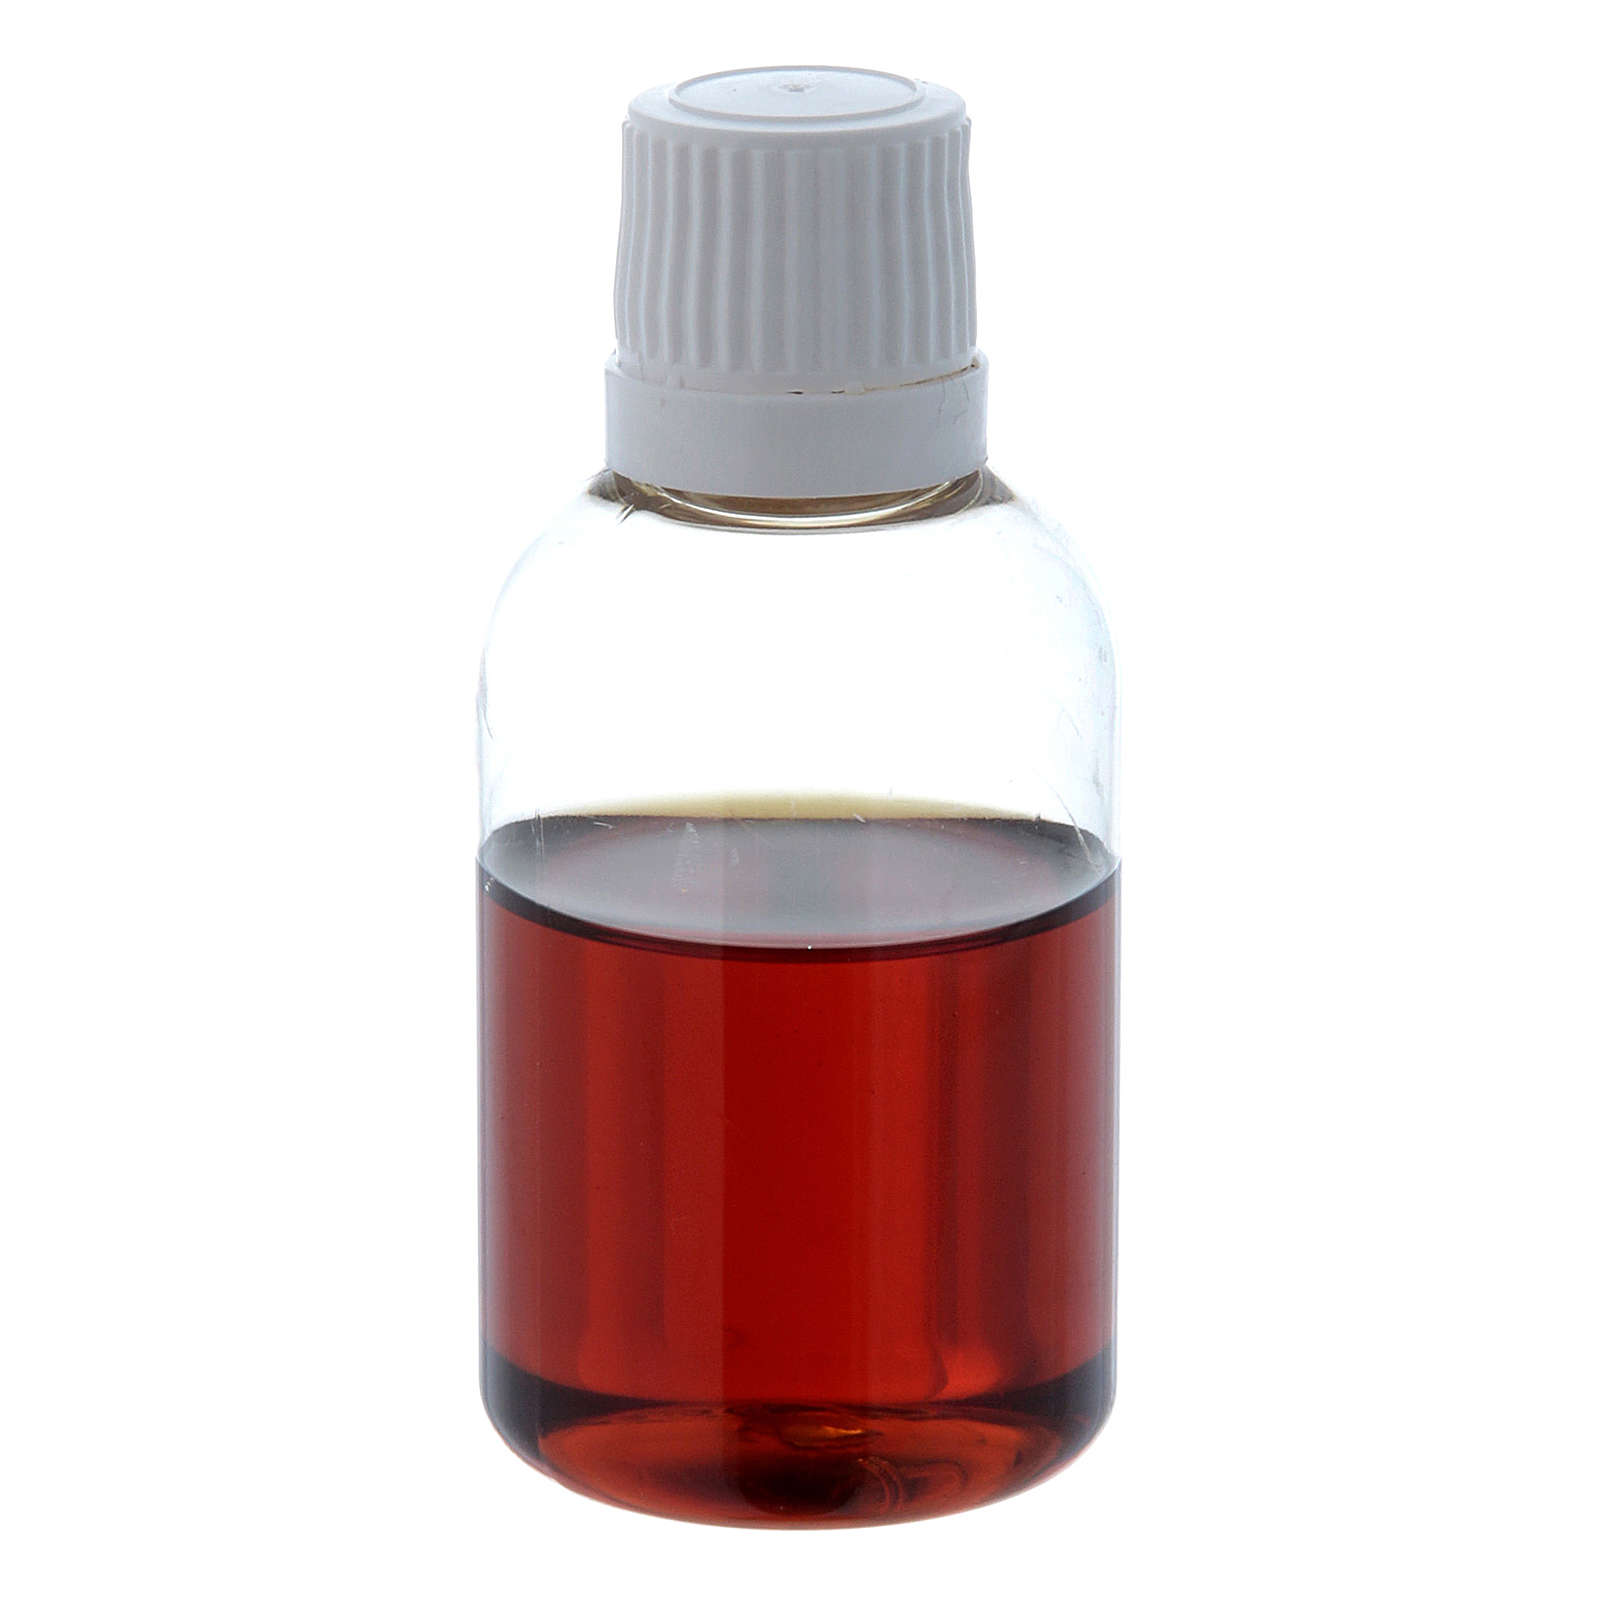 Nard-scented oil 35 ml, biblical unguent 3